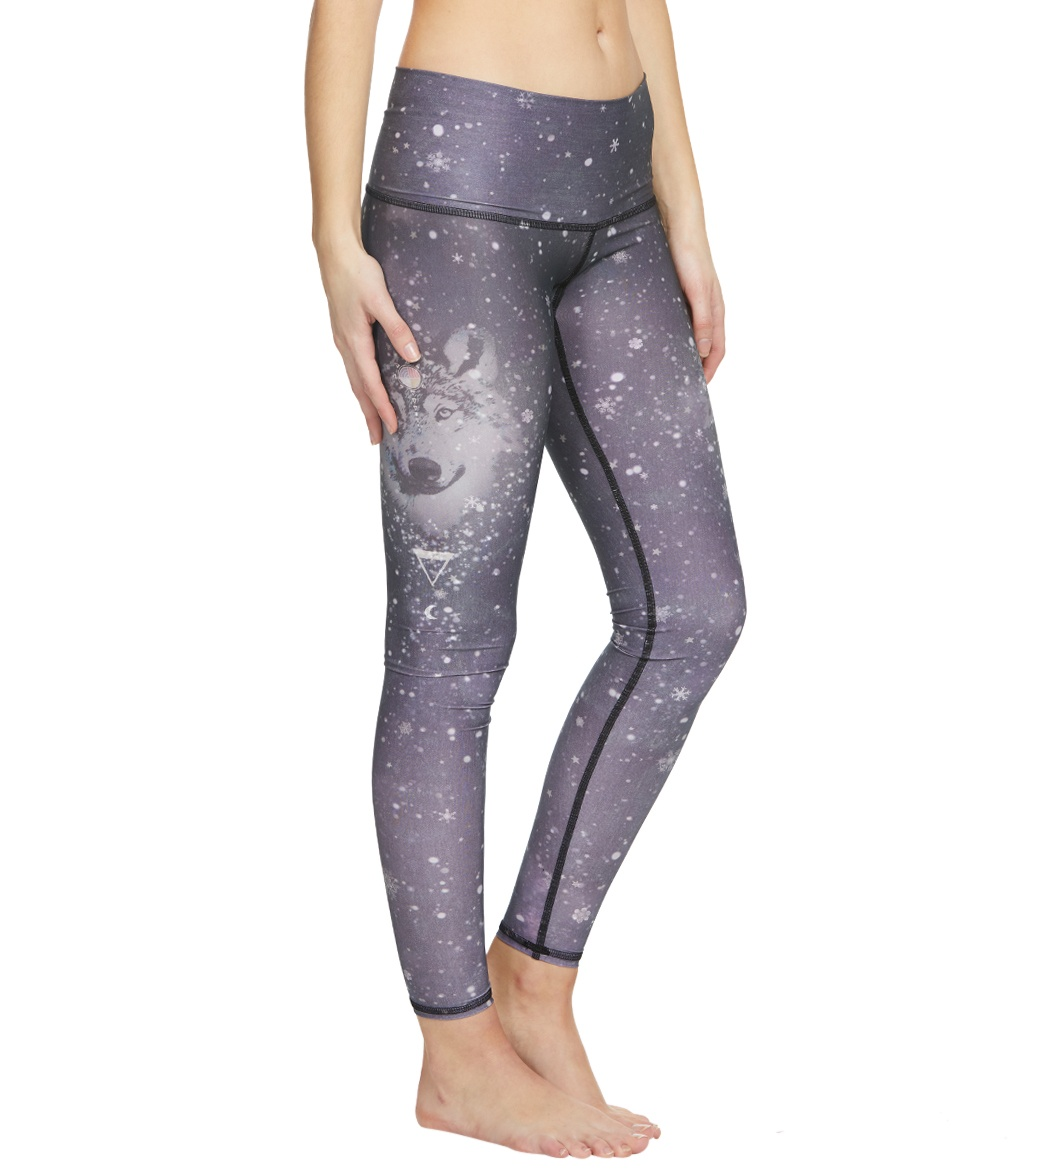 f64c62e981b65 Teeki Run With Wolves Hot Pant Yoga Leggings at YogaOutlet.com - Free  Shipping